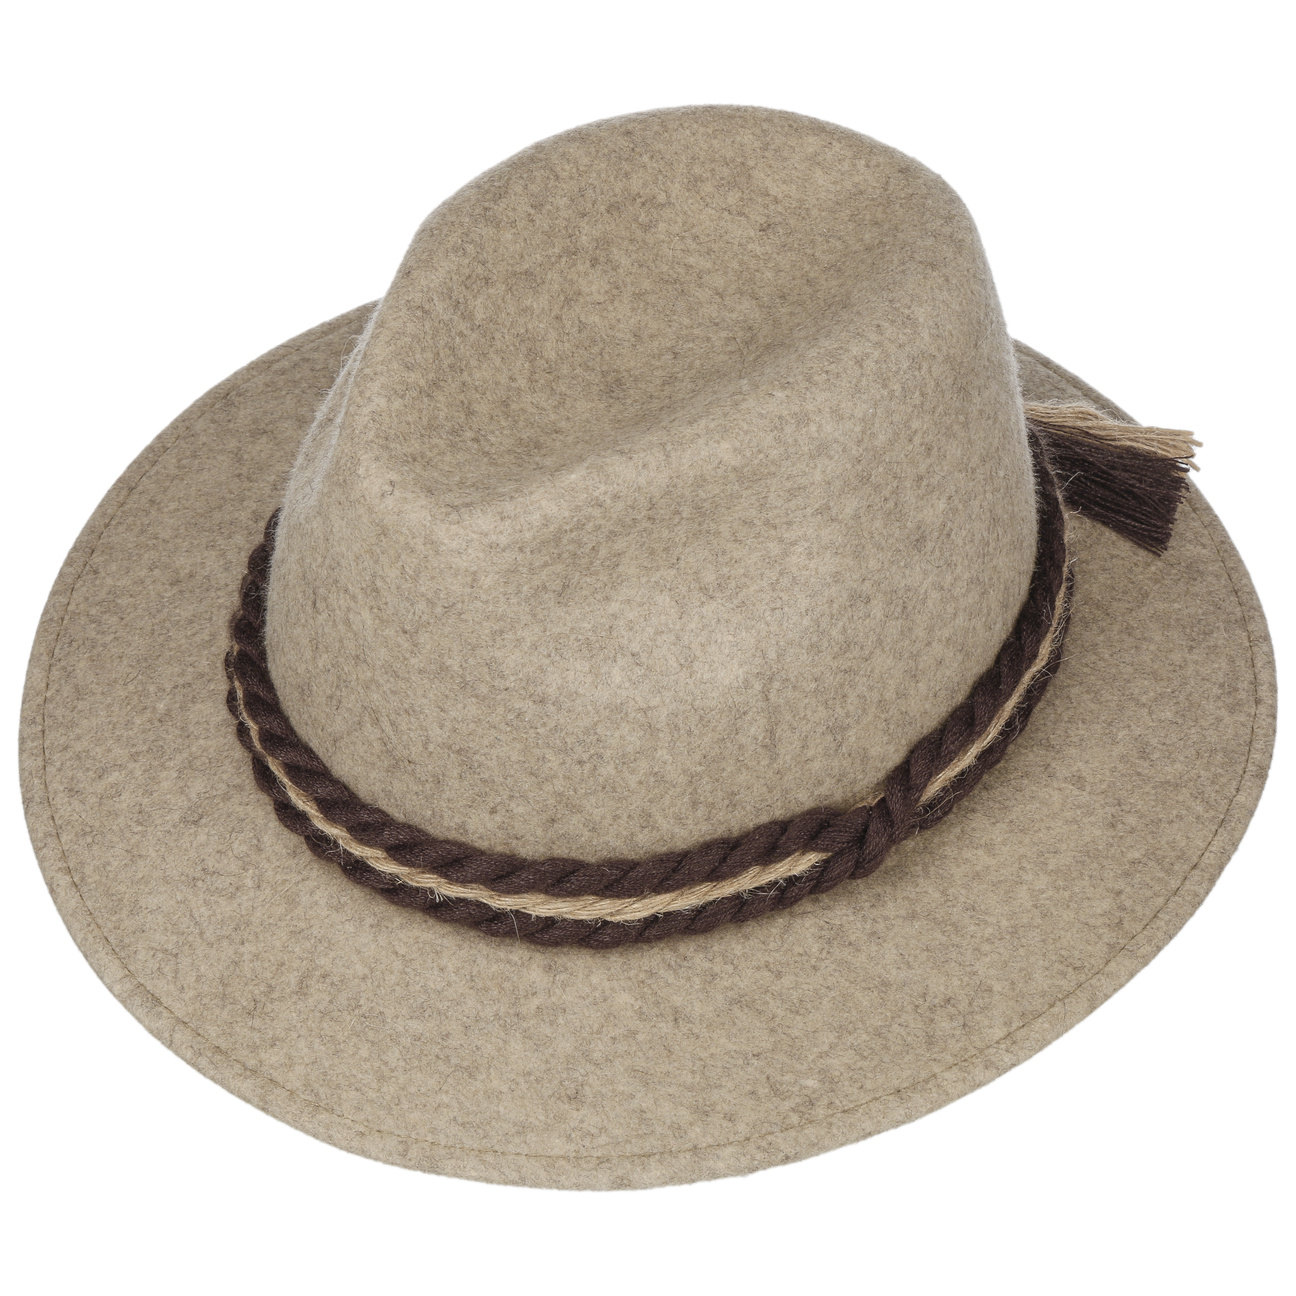 ... Traditional Tyrolean Wool Felt Hat - beige 2 ... a668464def6